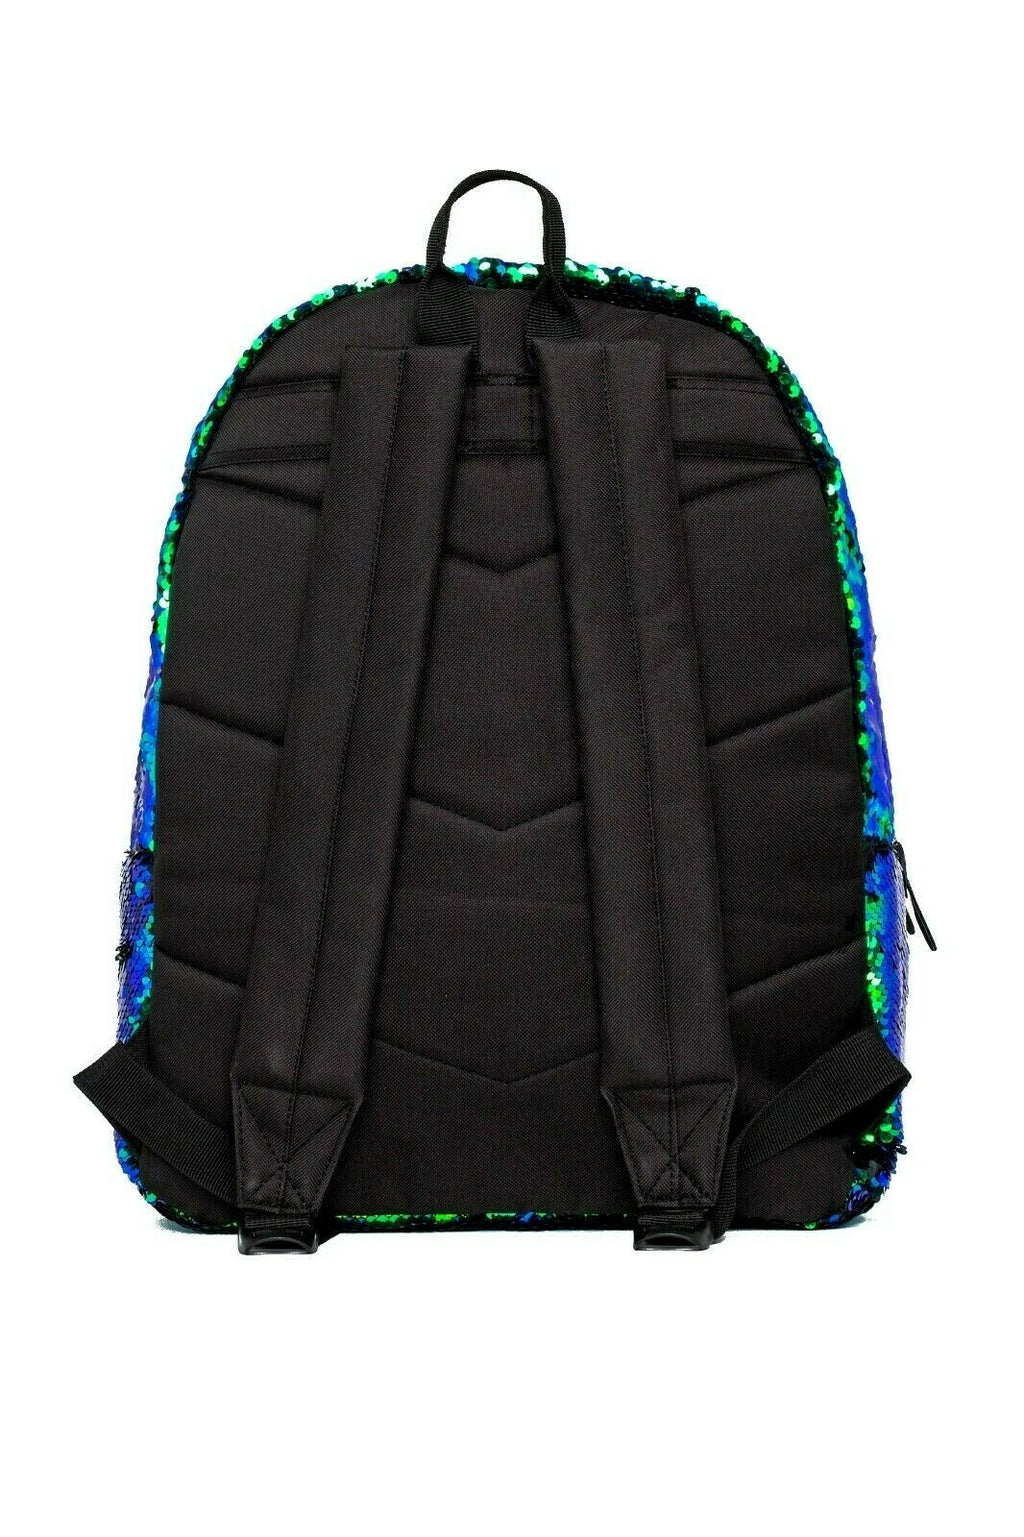 HYPE MERMAID SEQUIN BACKPACK RUCKSACK BAG - MULTI